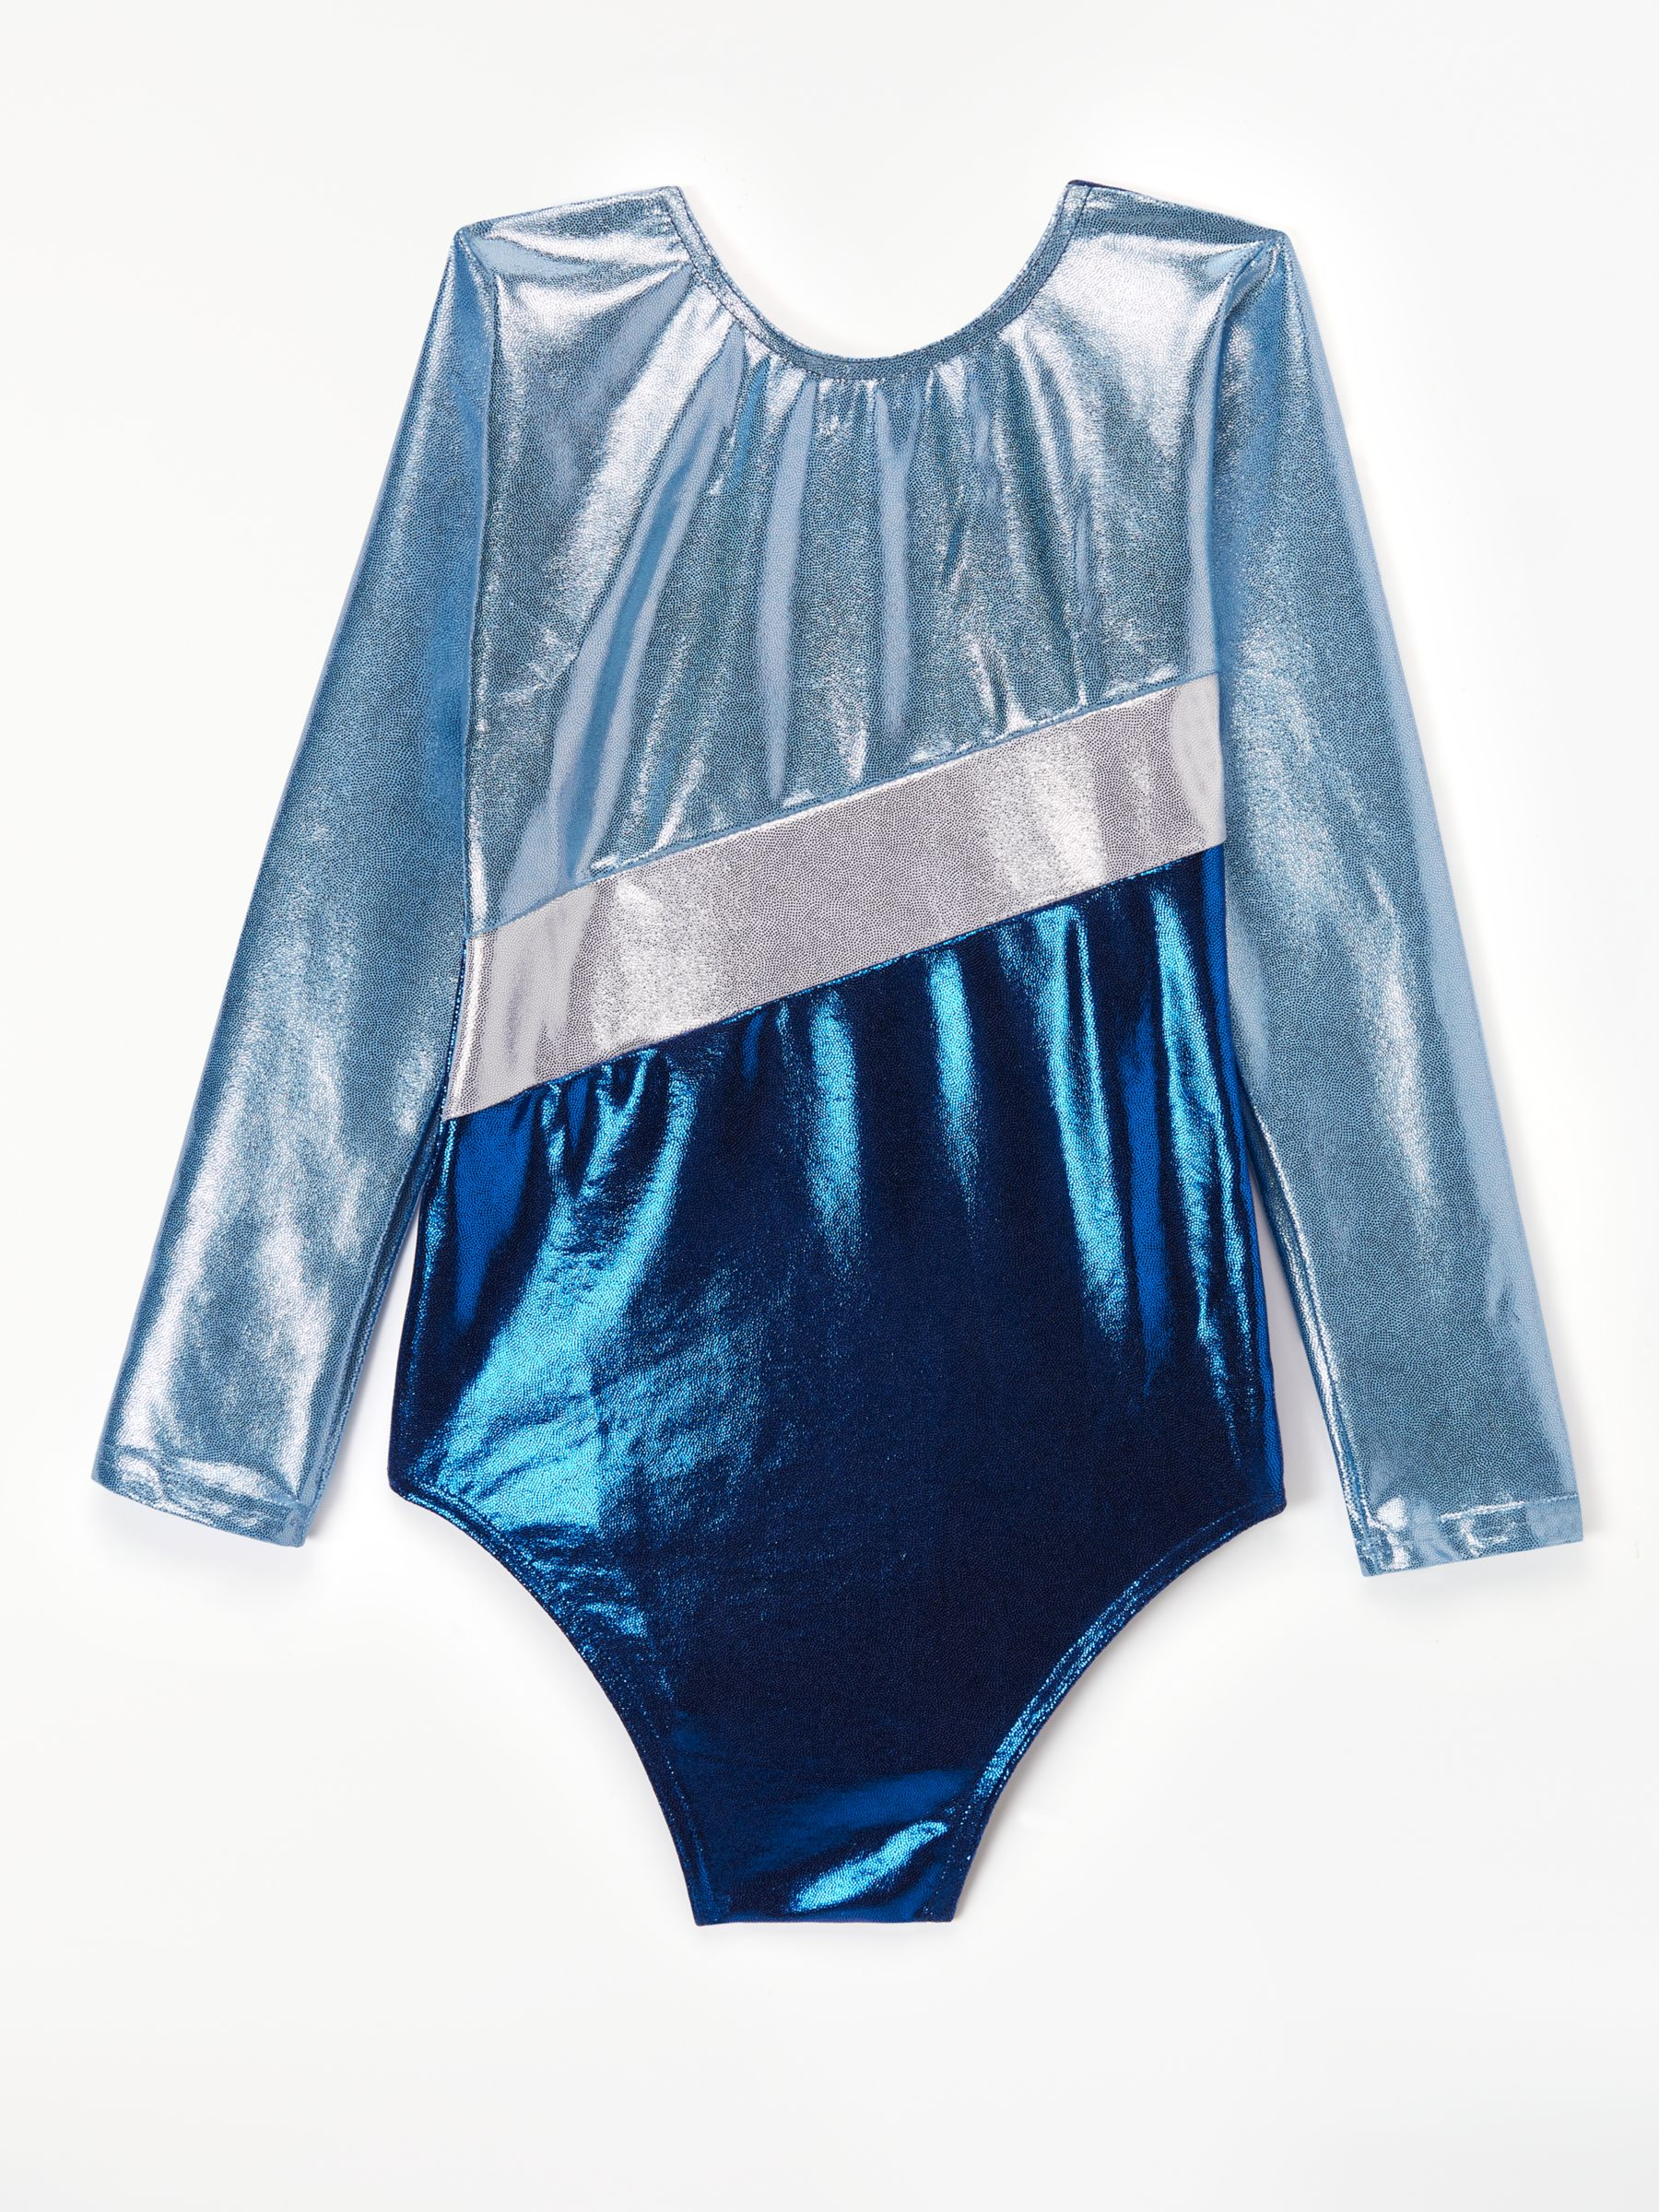 Tappers and Pointers Tappers and Pointers Sparkling Gymnastics Leotard, Navy/Sky/Silver